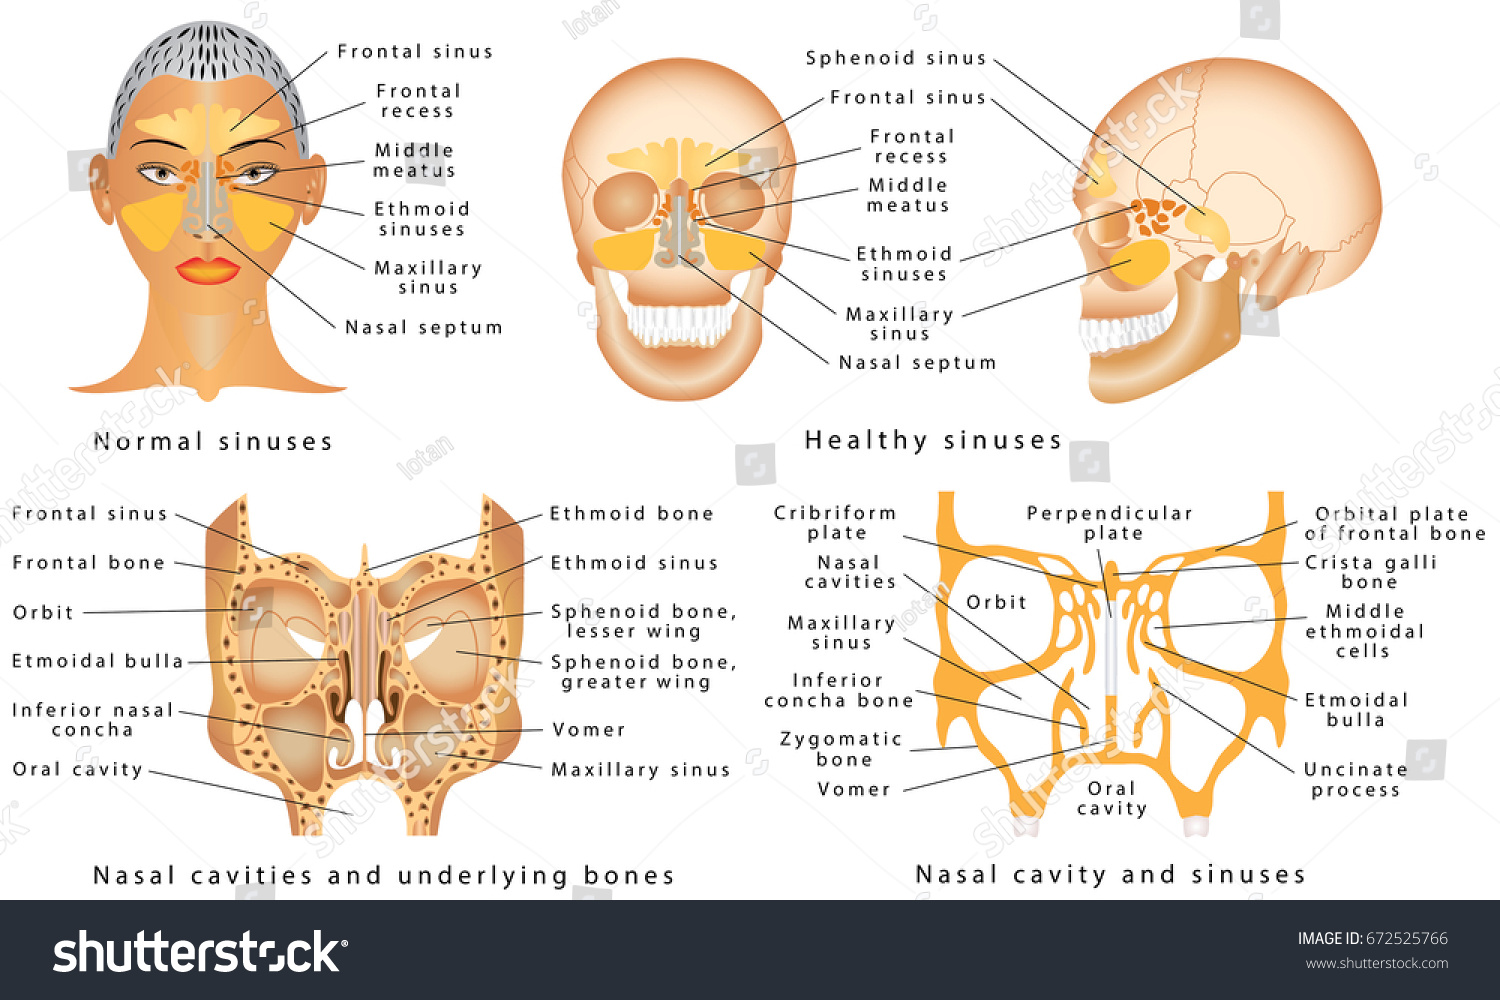 Sinuses Nose Human Anatomy Sinus Diagram Stock Vector 672525766